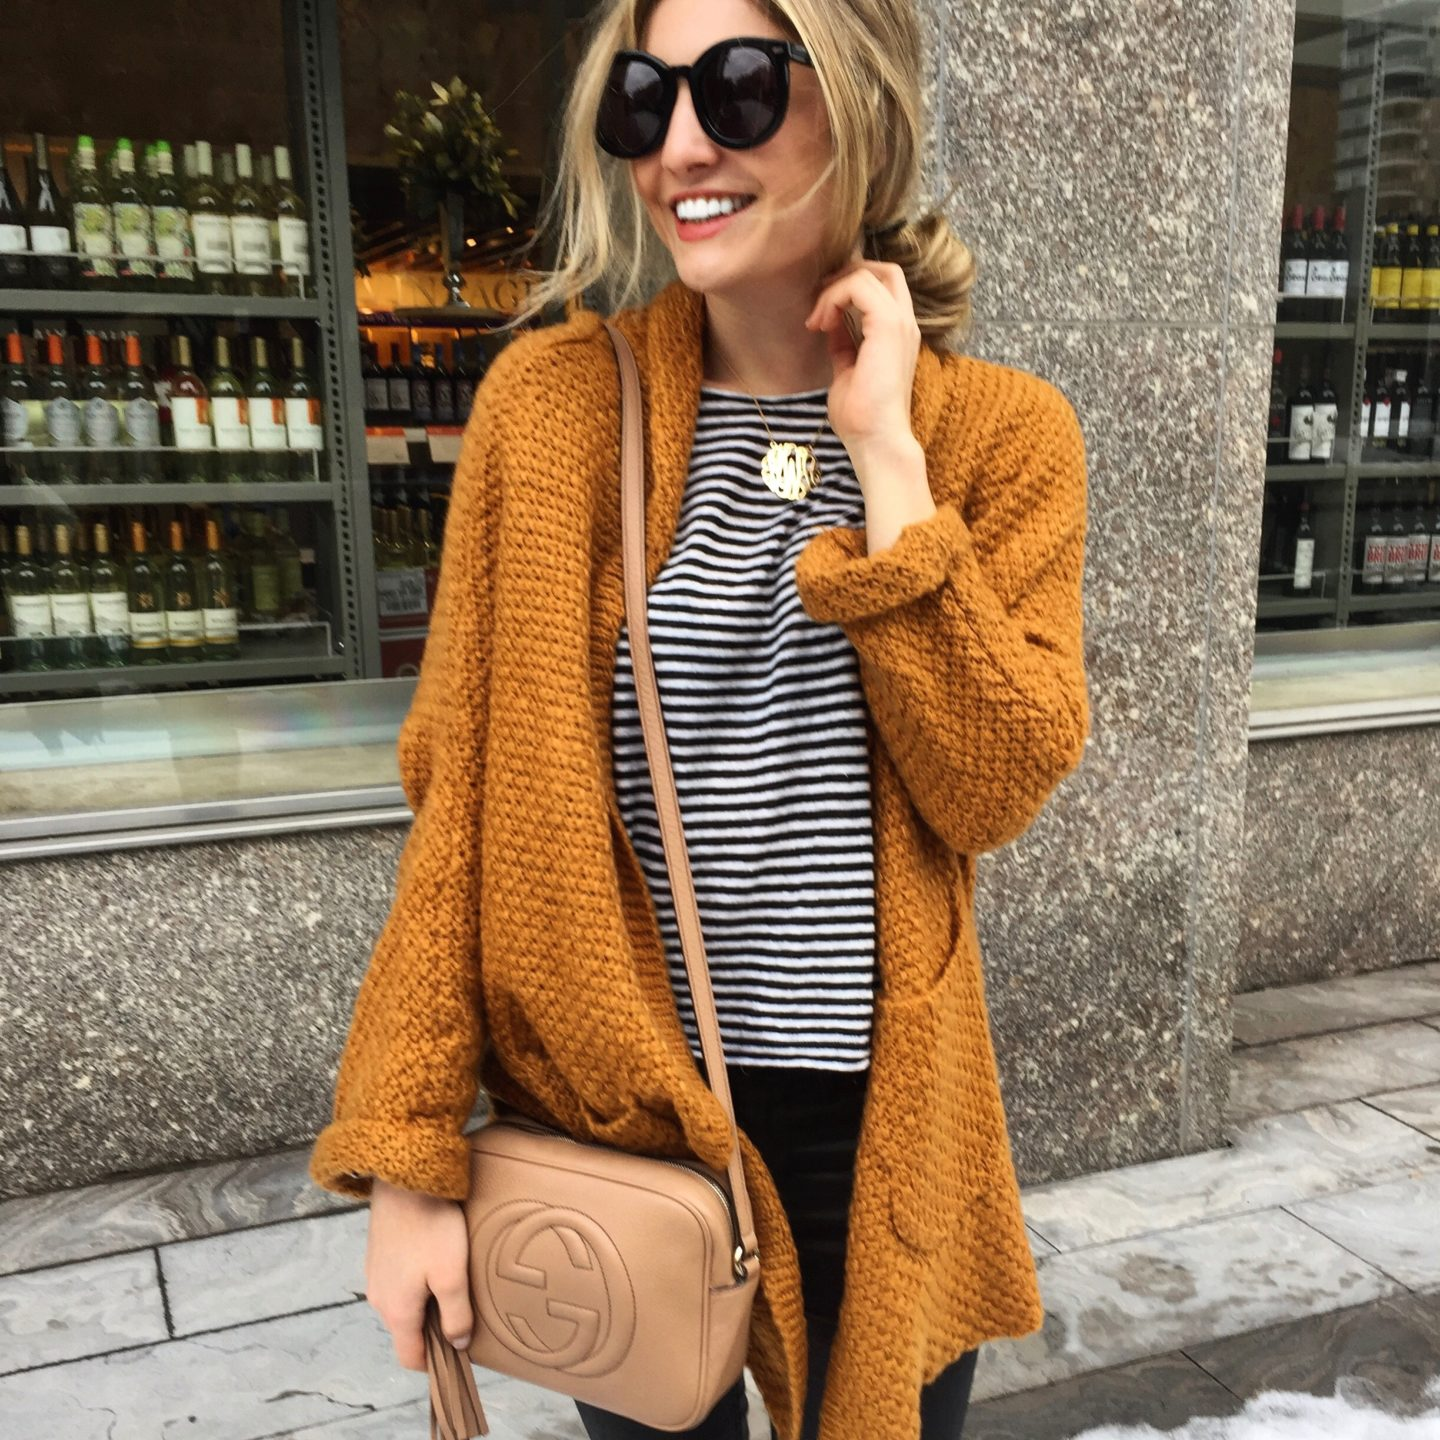 Burnt Orange, Oversized, Comfy Cozy Cardigan - The Blonde in Pink